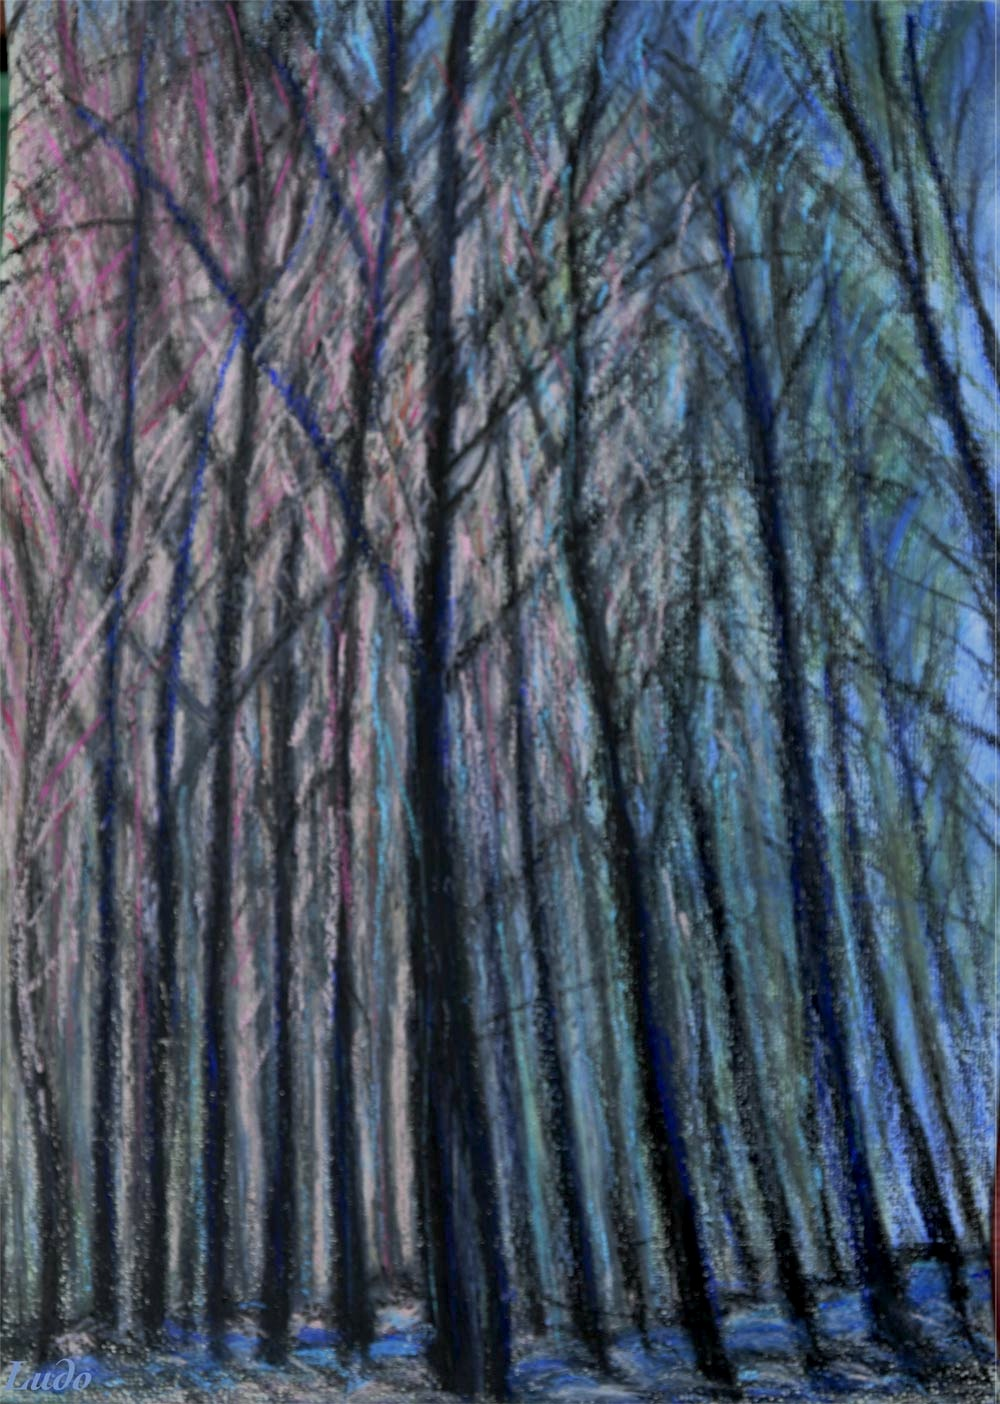 Lahonce forest no. 6. Oil pastel on paper, 42x30, 2015